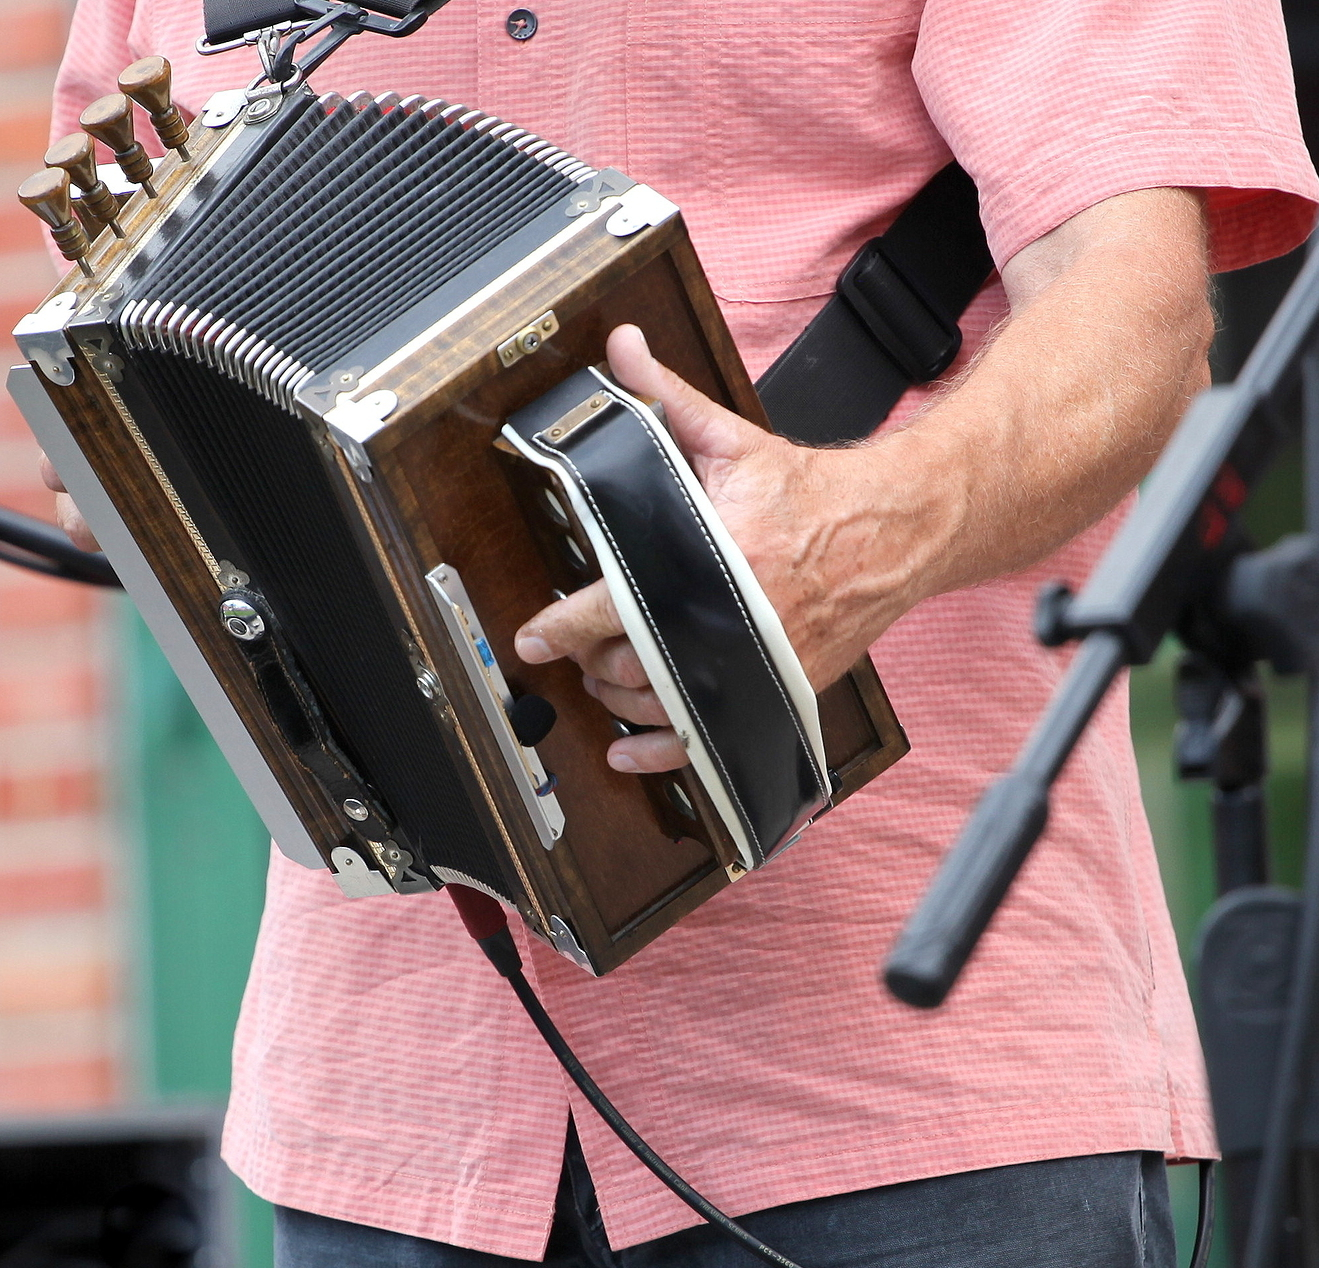 Zydeco accordion musician performing at a cajun music festival outdoors.